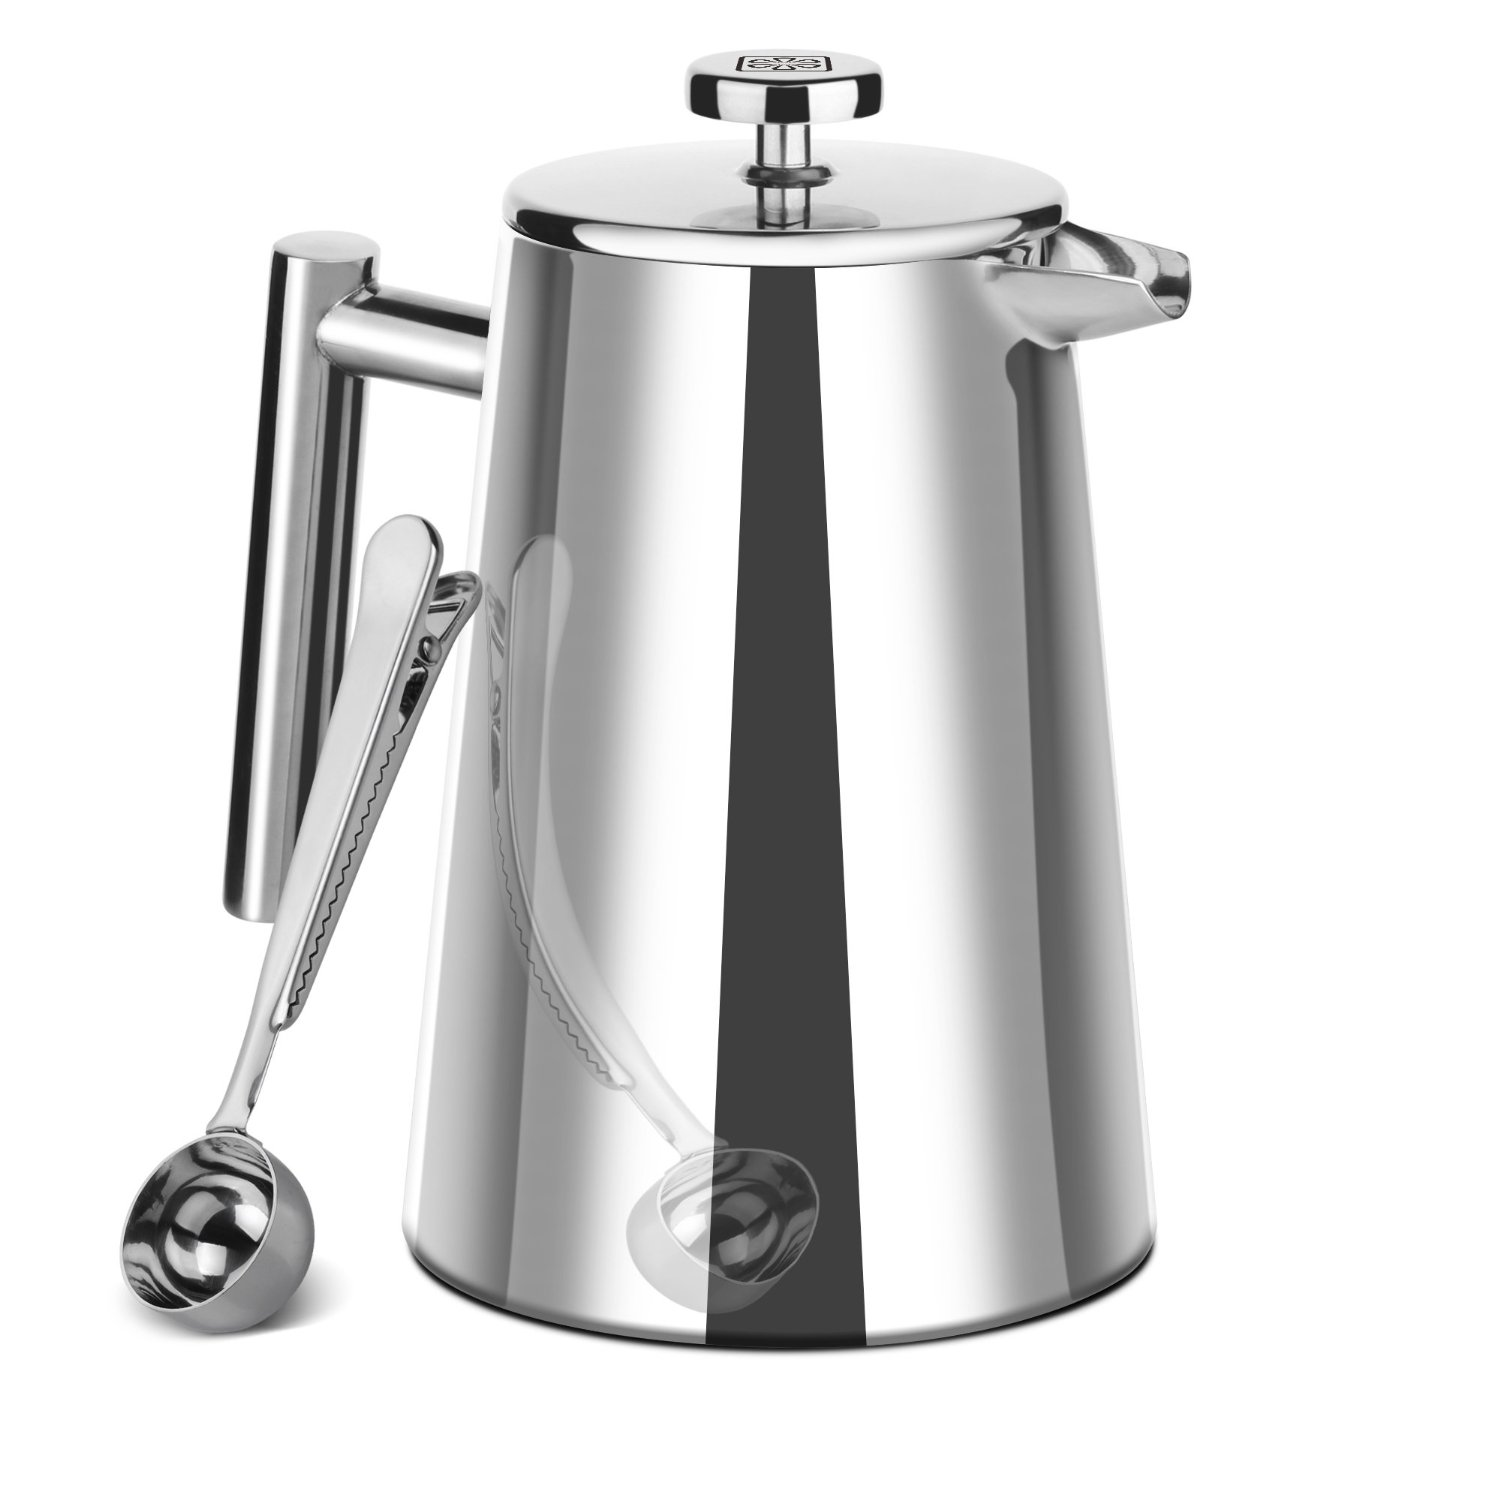 Double Wall Stainless Steel French Press   $ 32.99                        Buy on Amazon